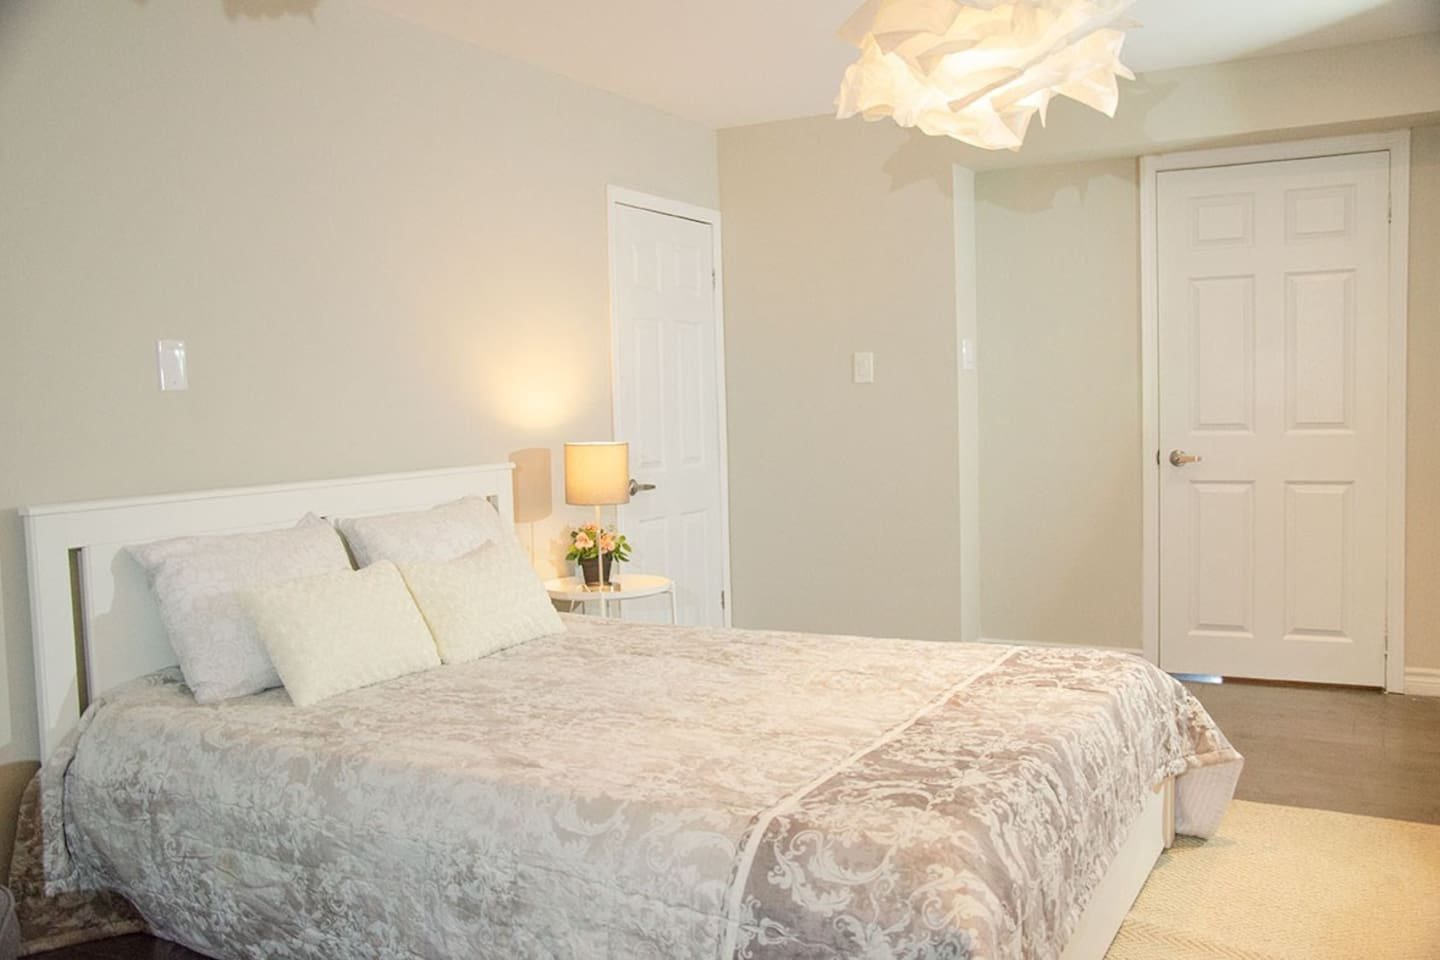 Spacious bedroom with Closet